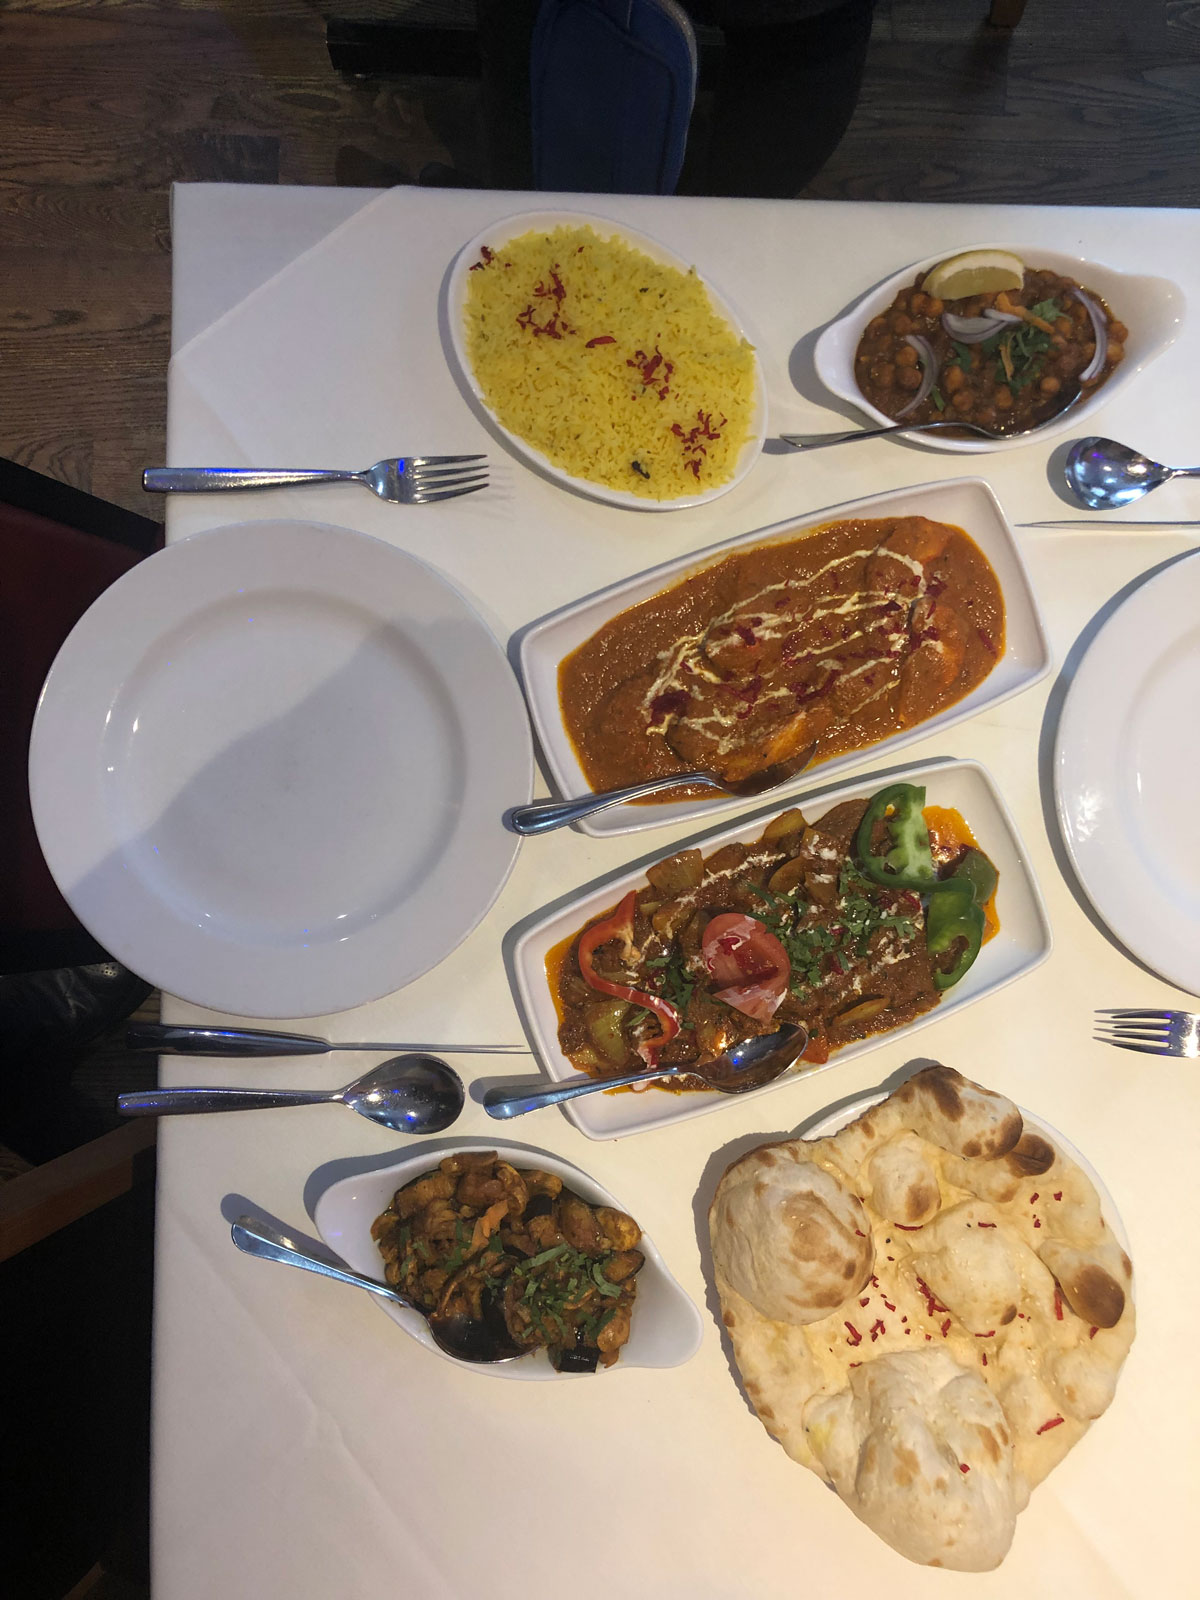 Indian food at rajdoot w1u